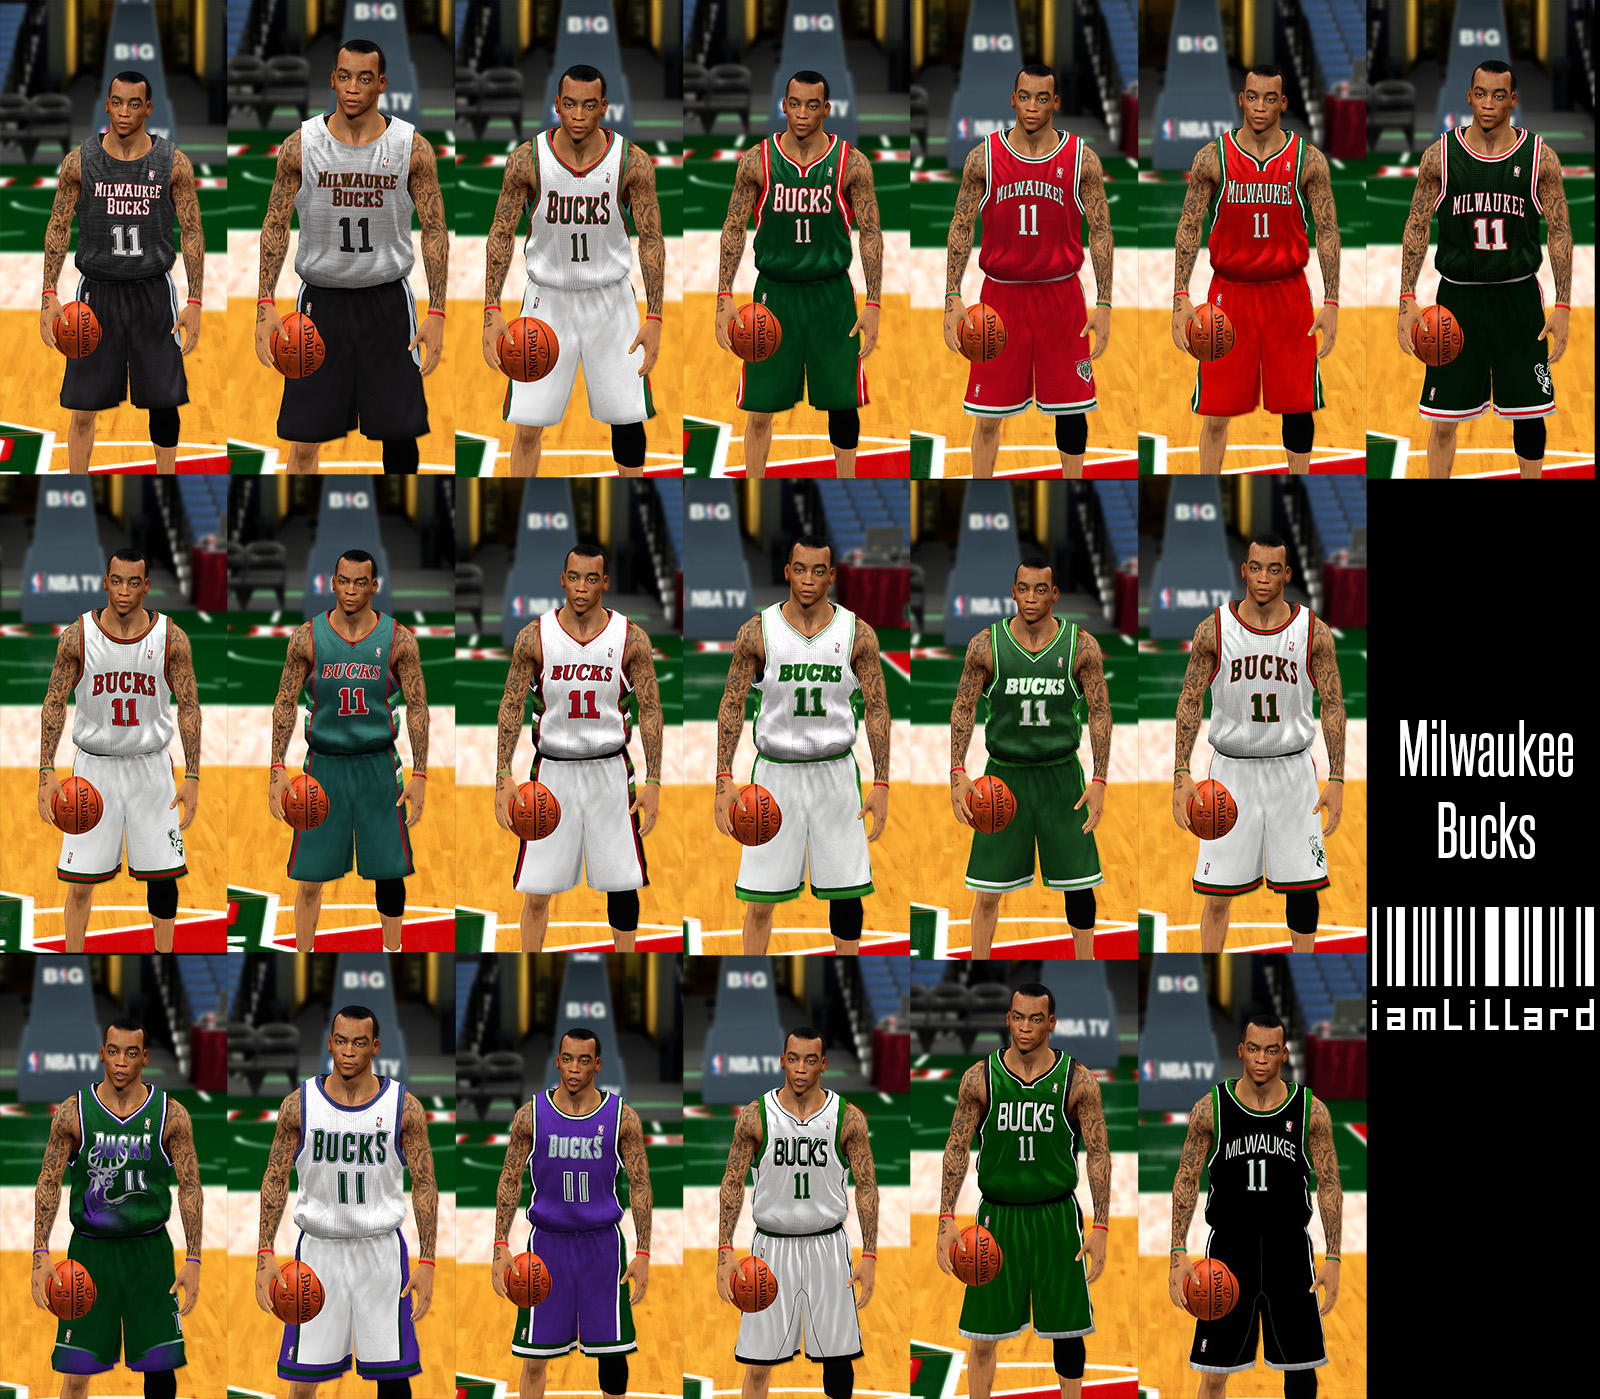 UJP Milwaukee Bucks Jersey